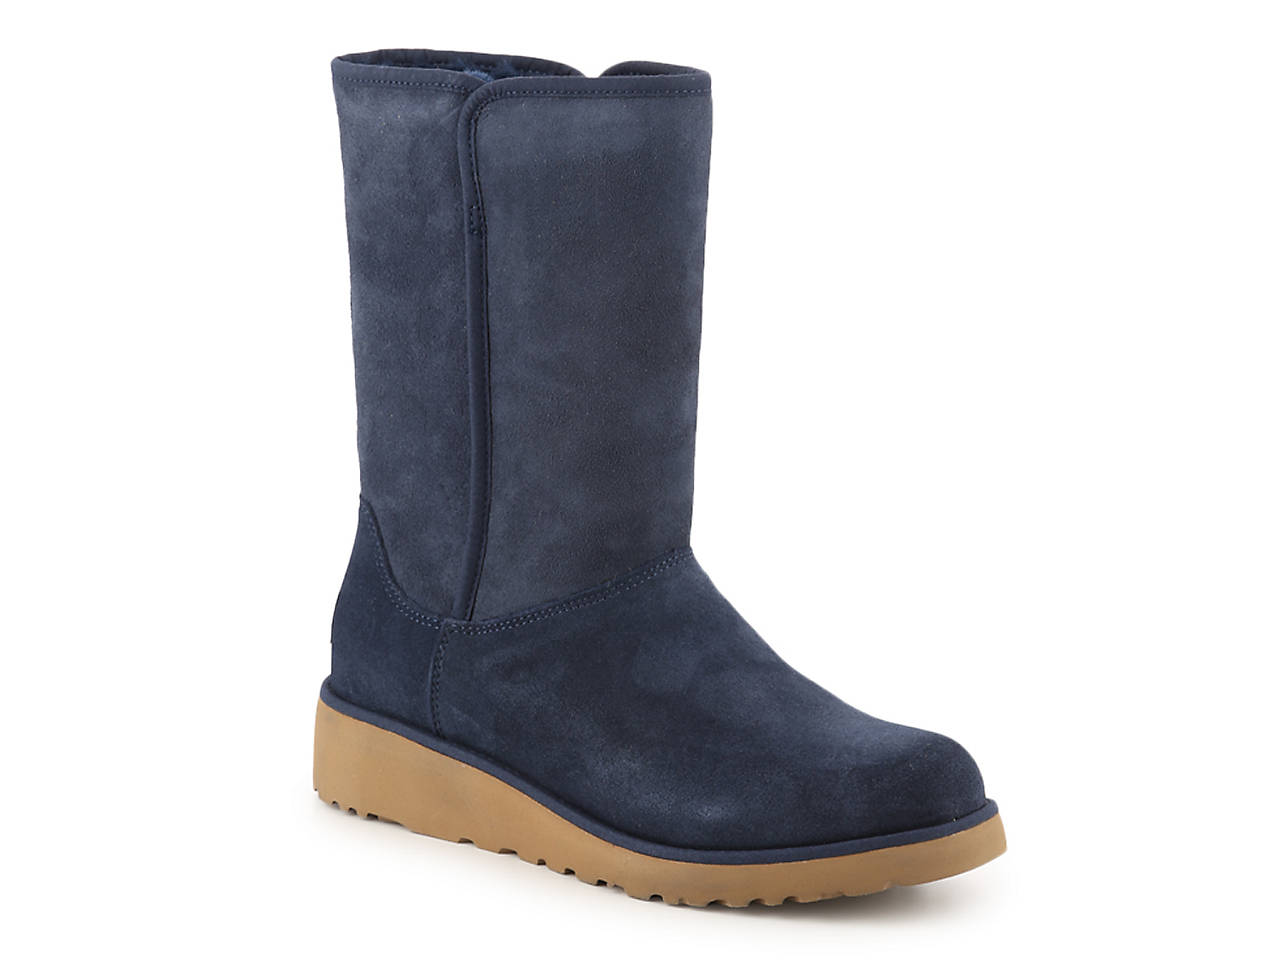 b525b9543f0 UGG Amie Wedge Boot Women s Shoes